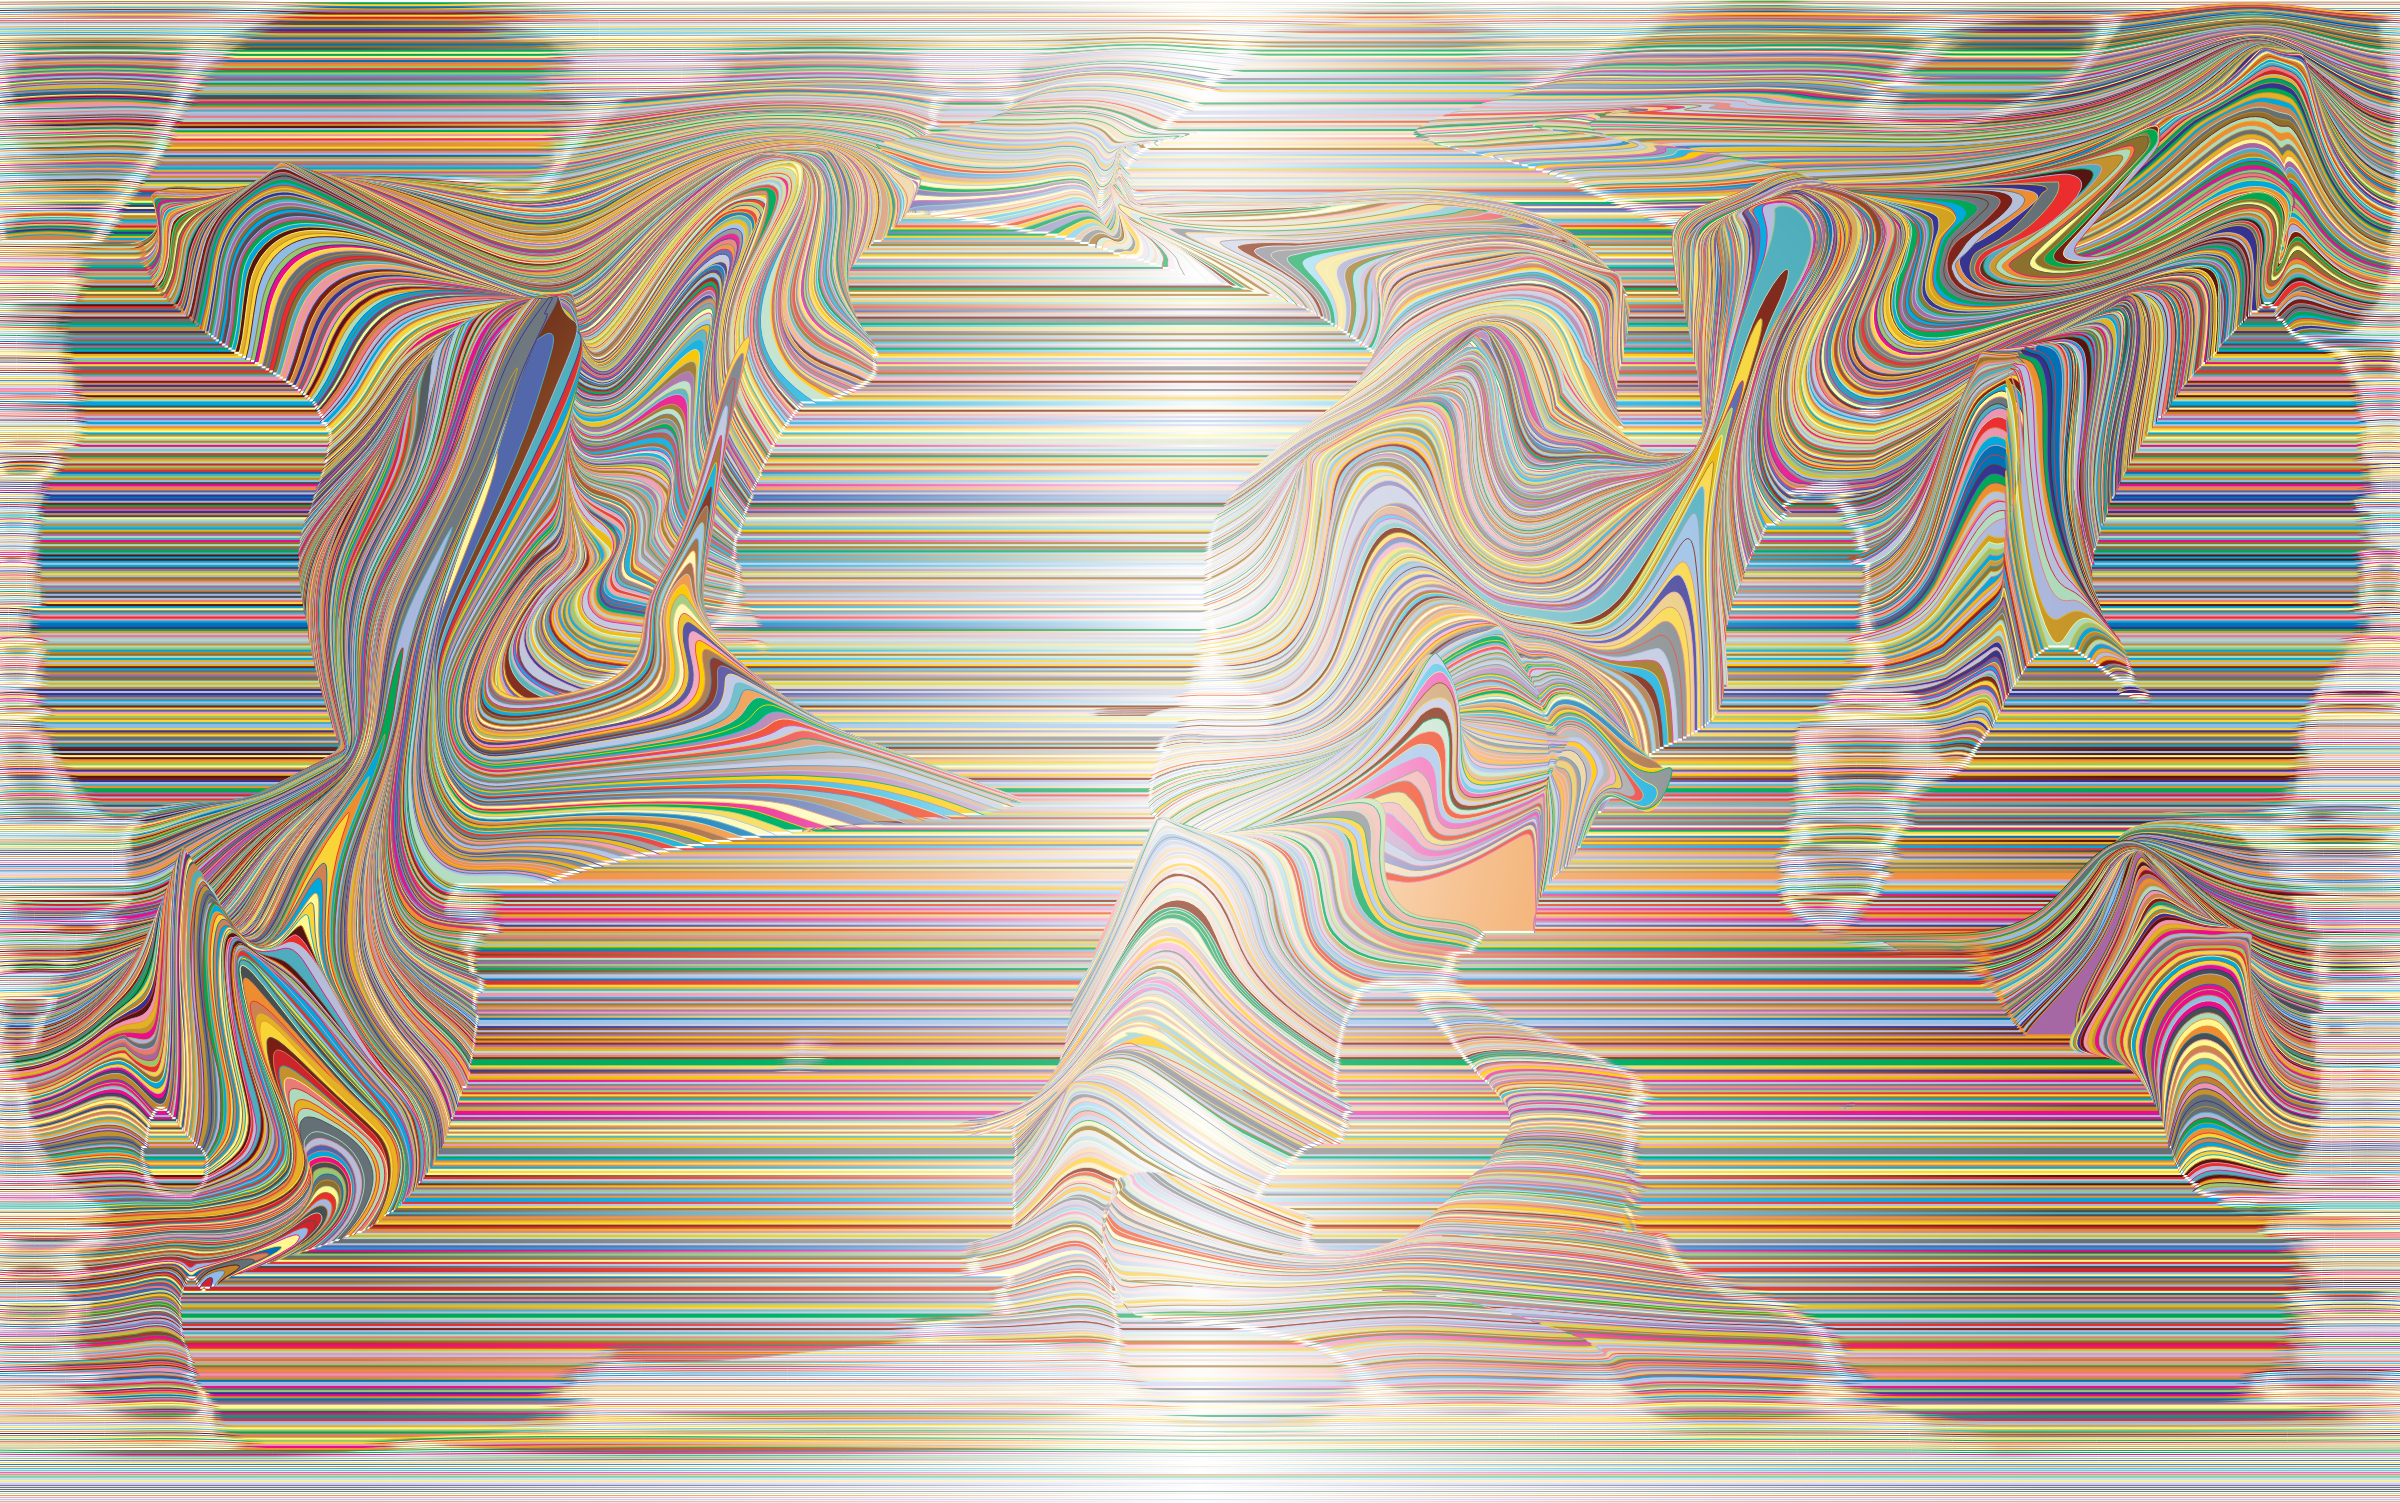 Prismatic Distorted Line Art Background 2 Variation 3 by GDJ